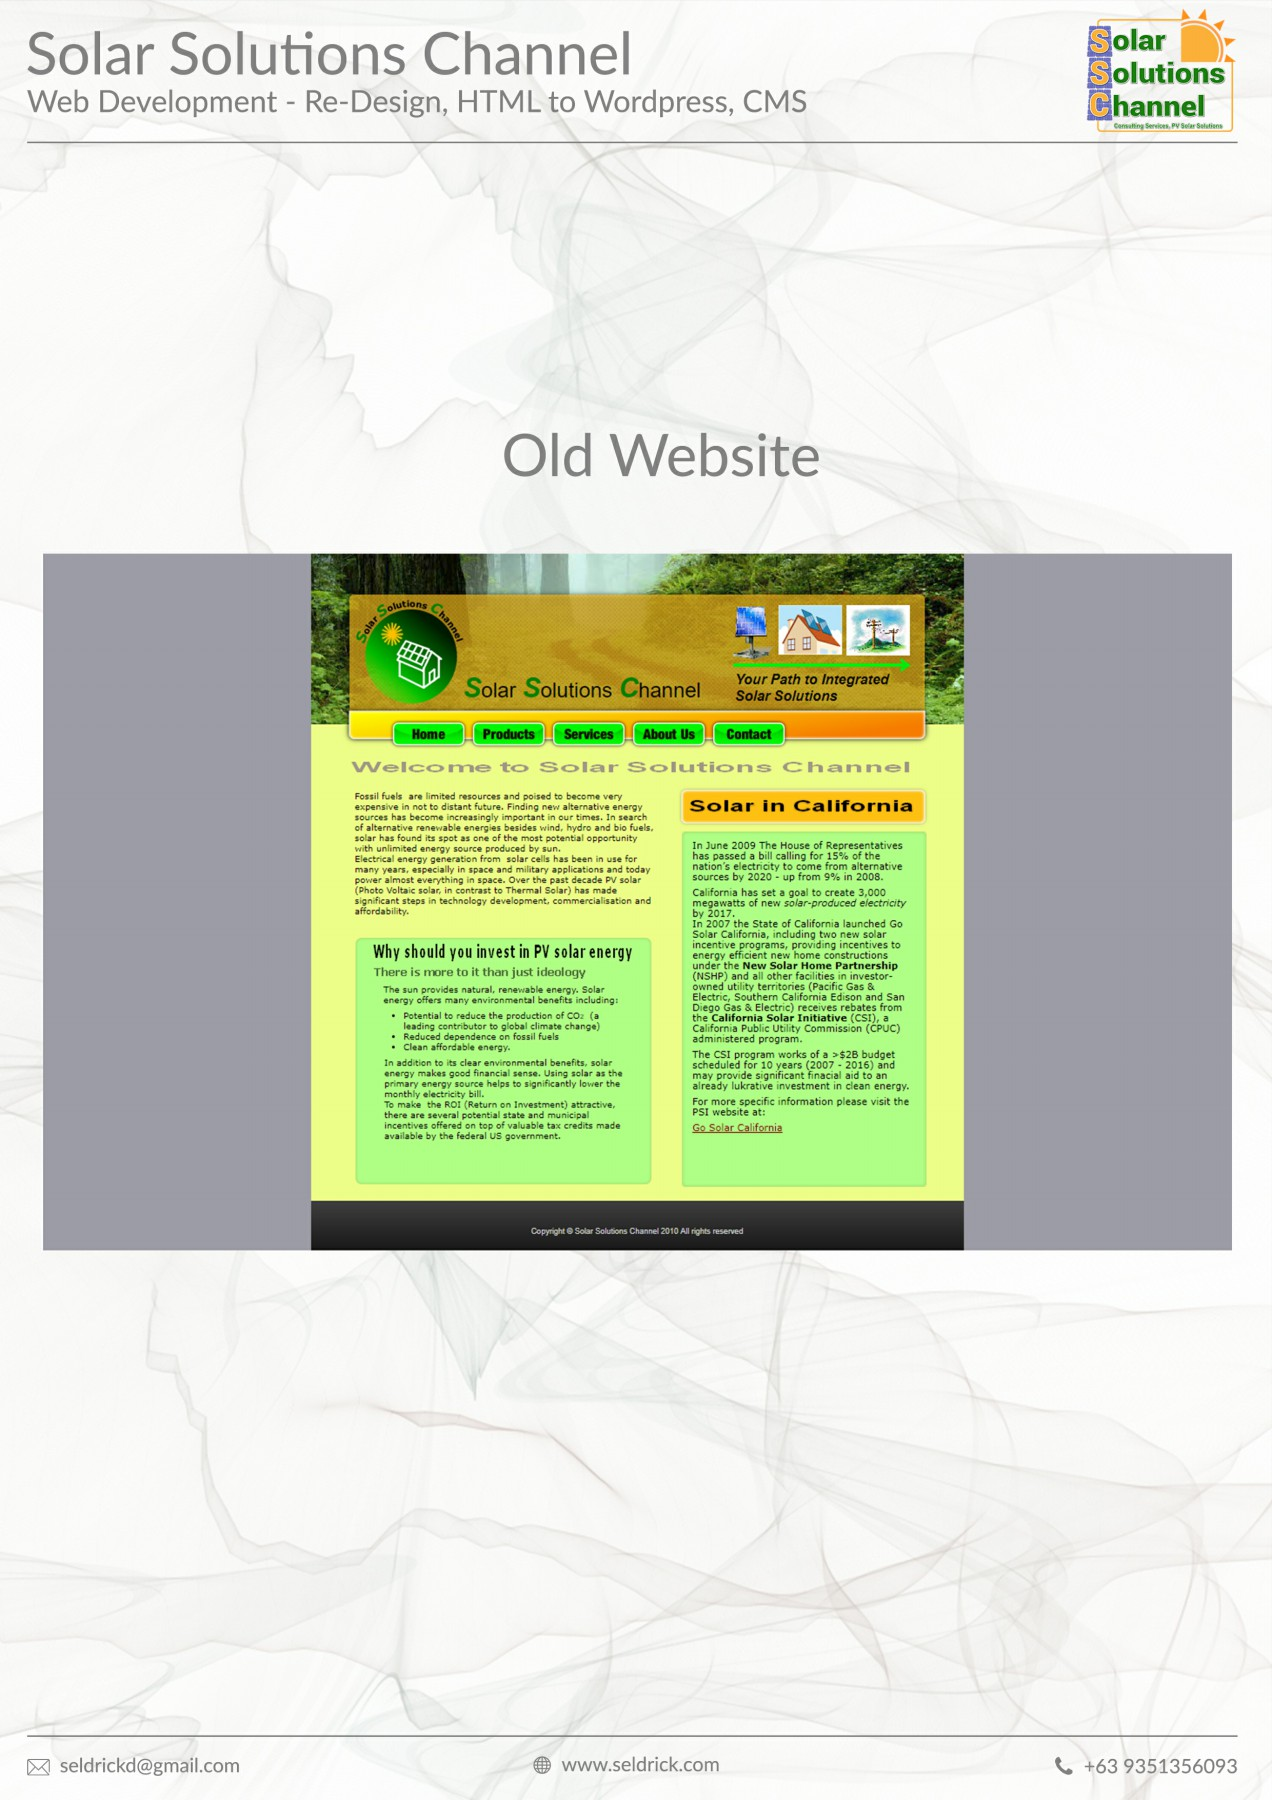 Small-ssc-website-page-1